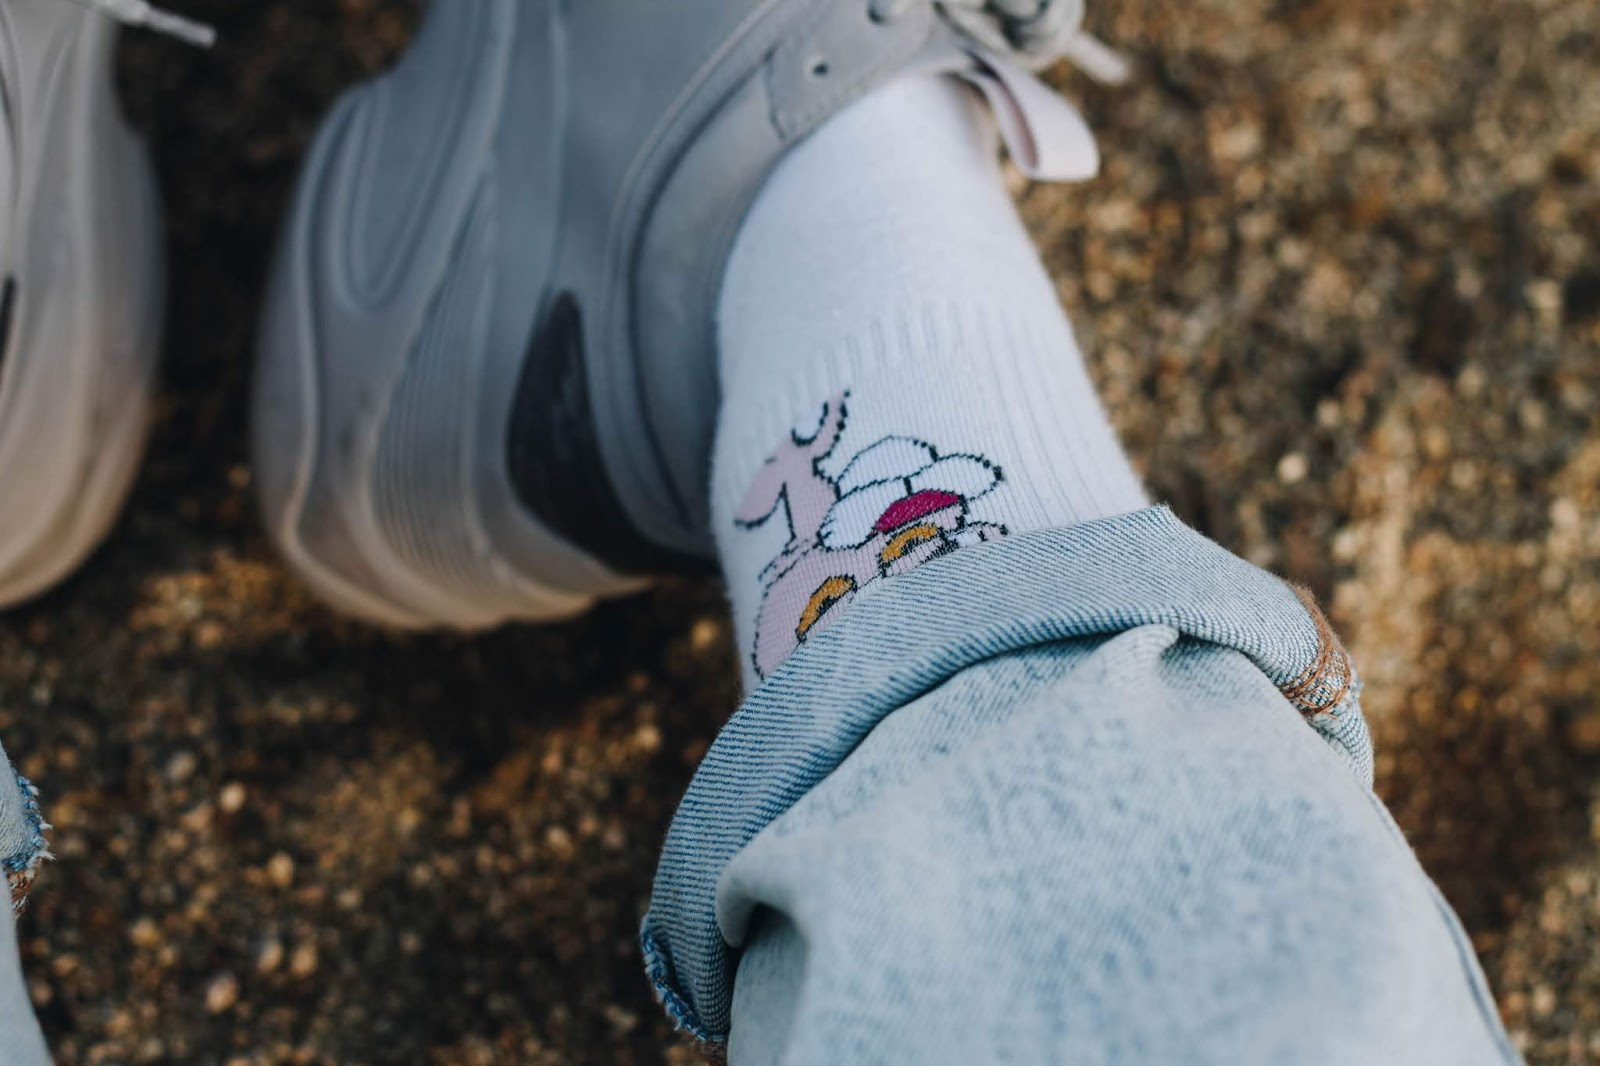 As for my outfit - I have the most adorable socks ever, right? I'm a 90s baby and I grew up watching Pink Panther, my favorite childhood cartoons. Unfortunately I don't have a direct link, but I bought these socks a few years ago on ebay. I put together some chunky sneakers alluding to the 90s with my acid wash mom jeans + this basic sweatshirt from Femme Luxe - soft, warm, and BAM, this is a look inspired on the nineties. I believe that these denim jeans are what makes you think immediately at that time period - 80s / 90s, in fact.